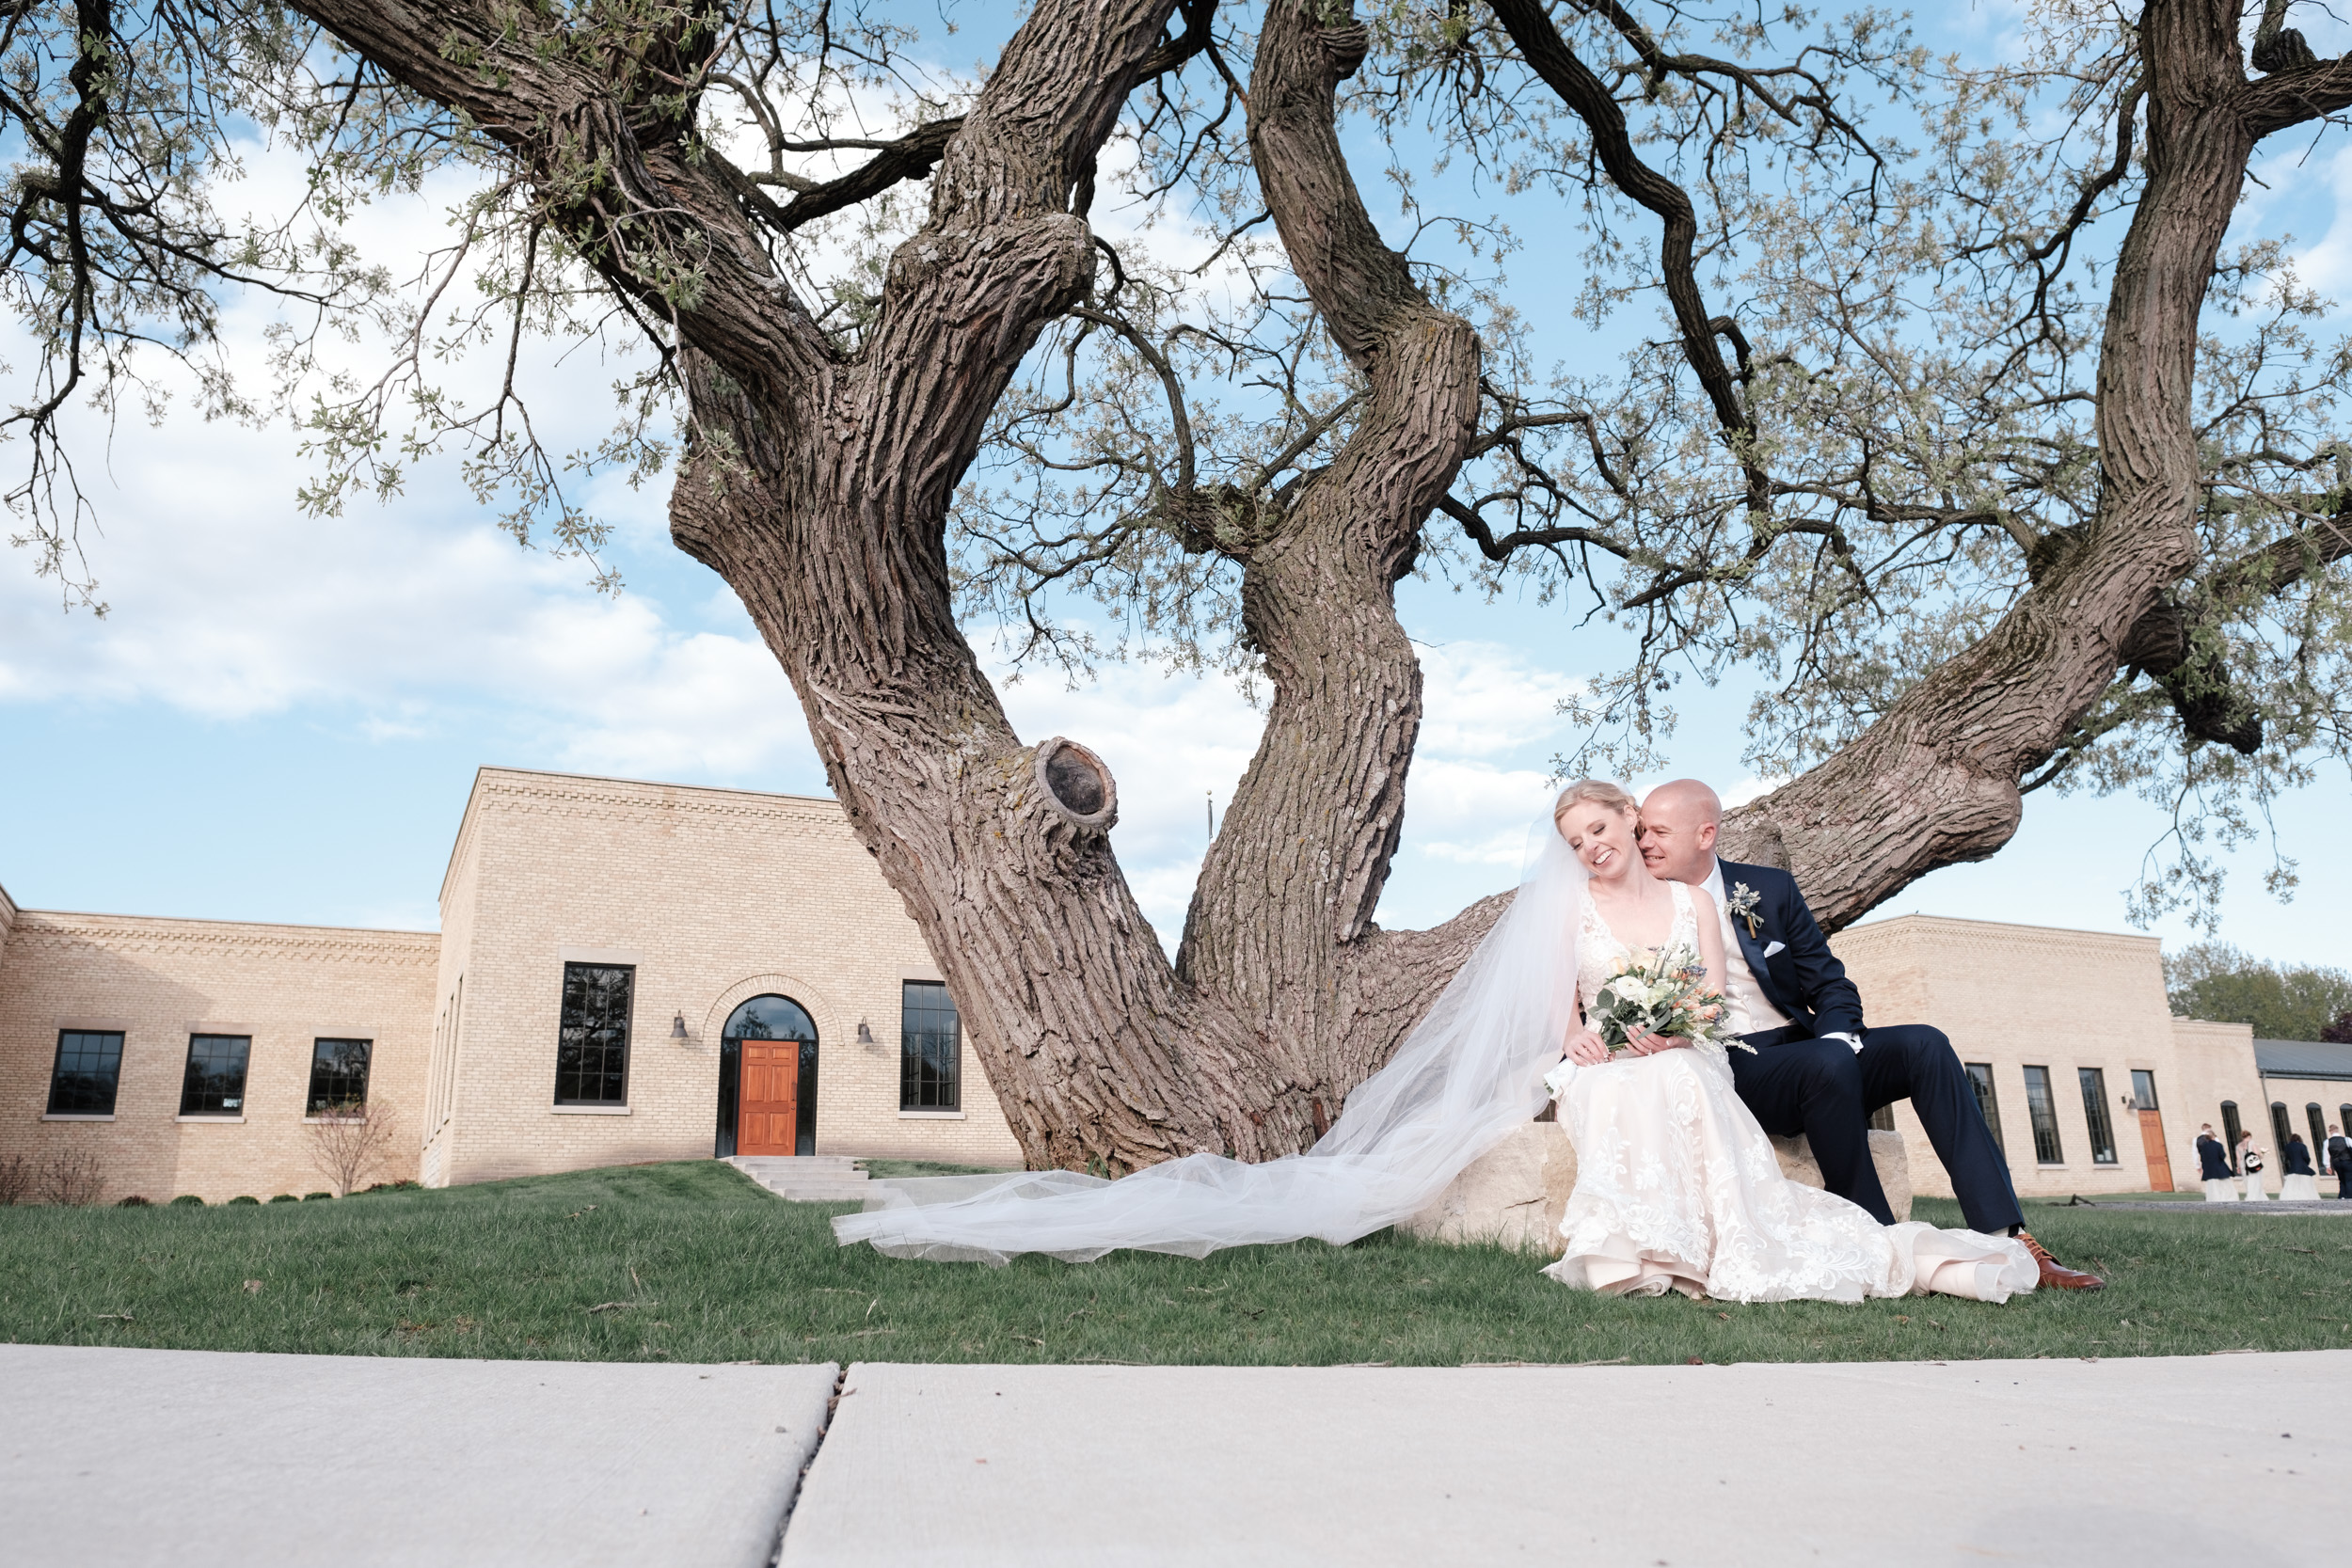 bride and groom mbrace on wedding day infront of oak tree at the brix